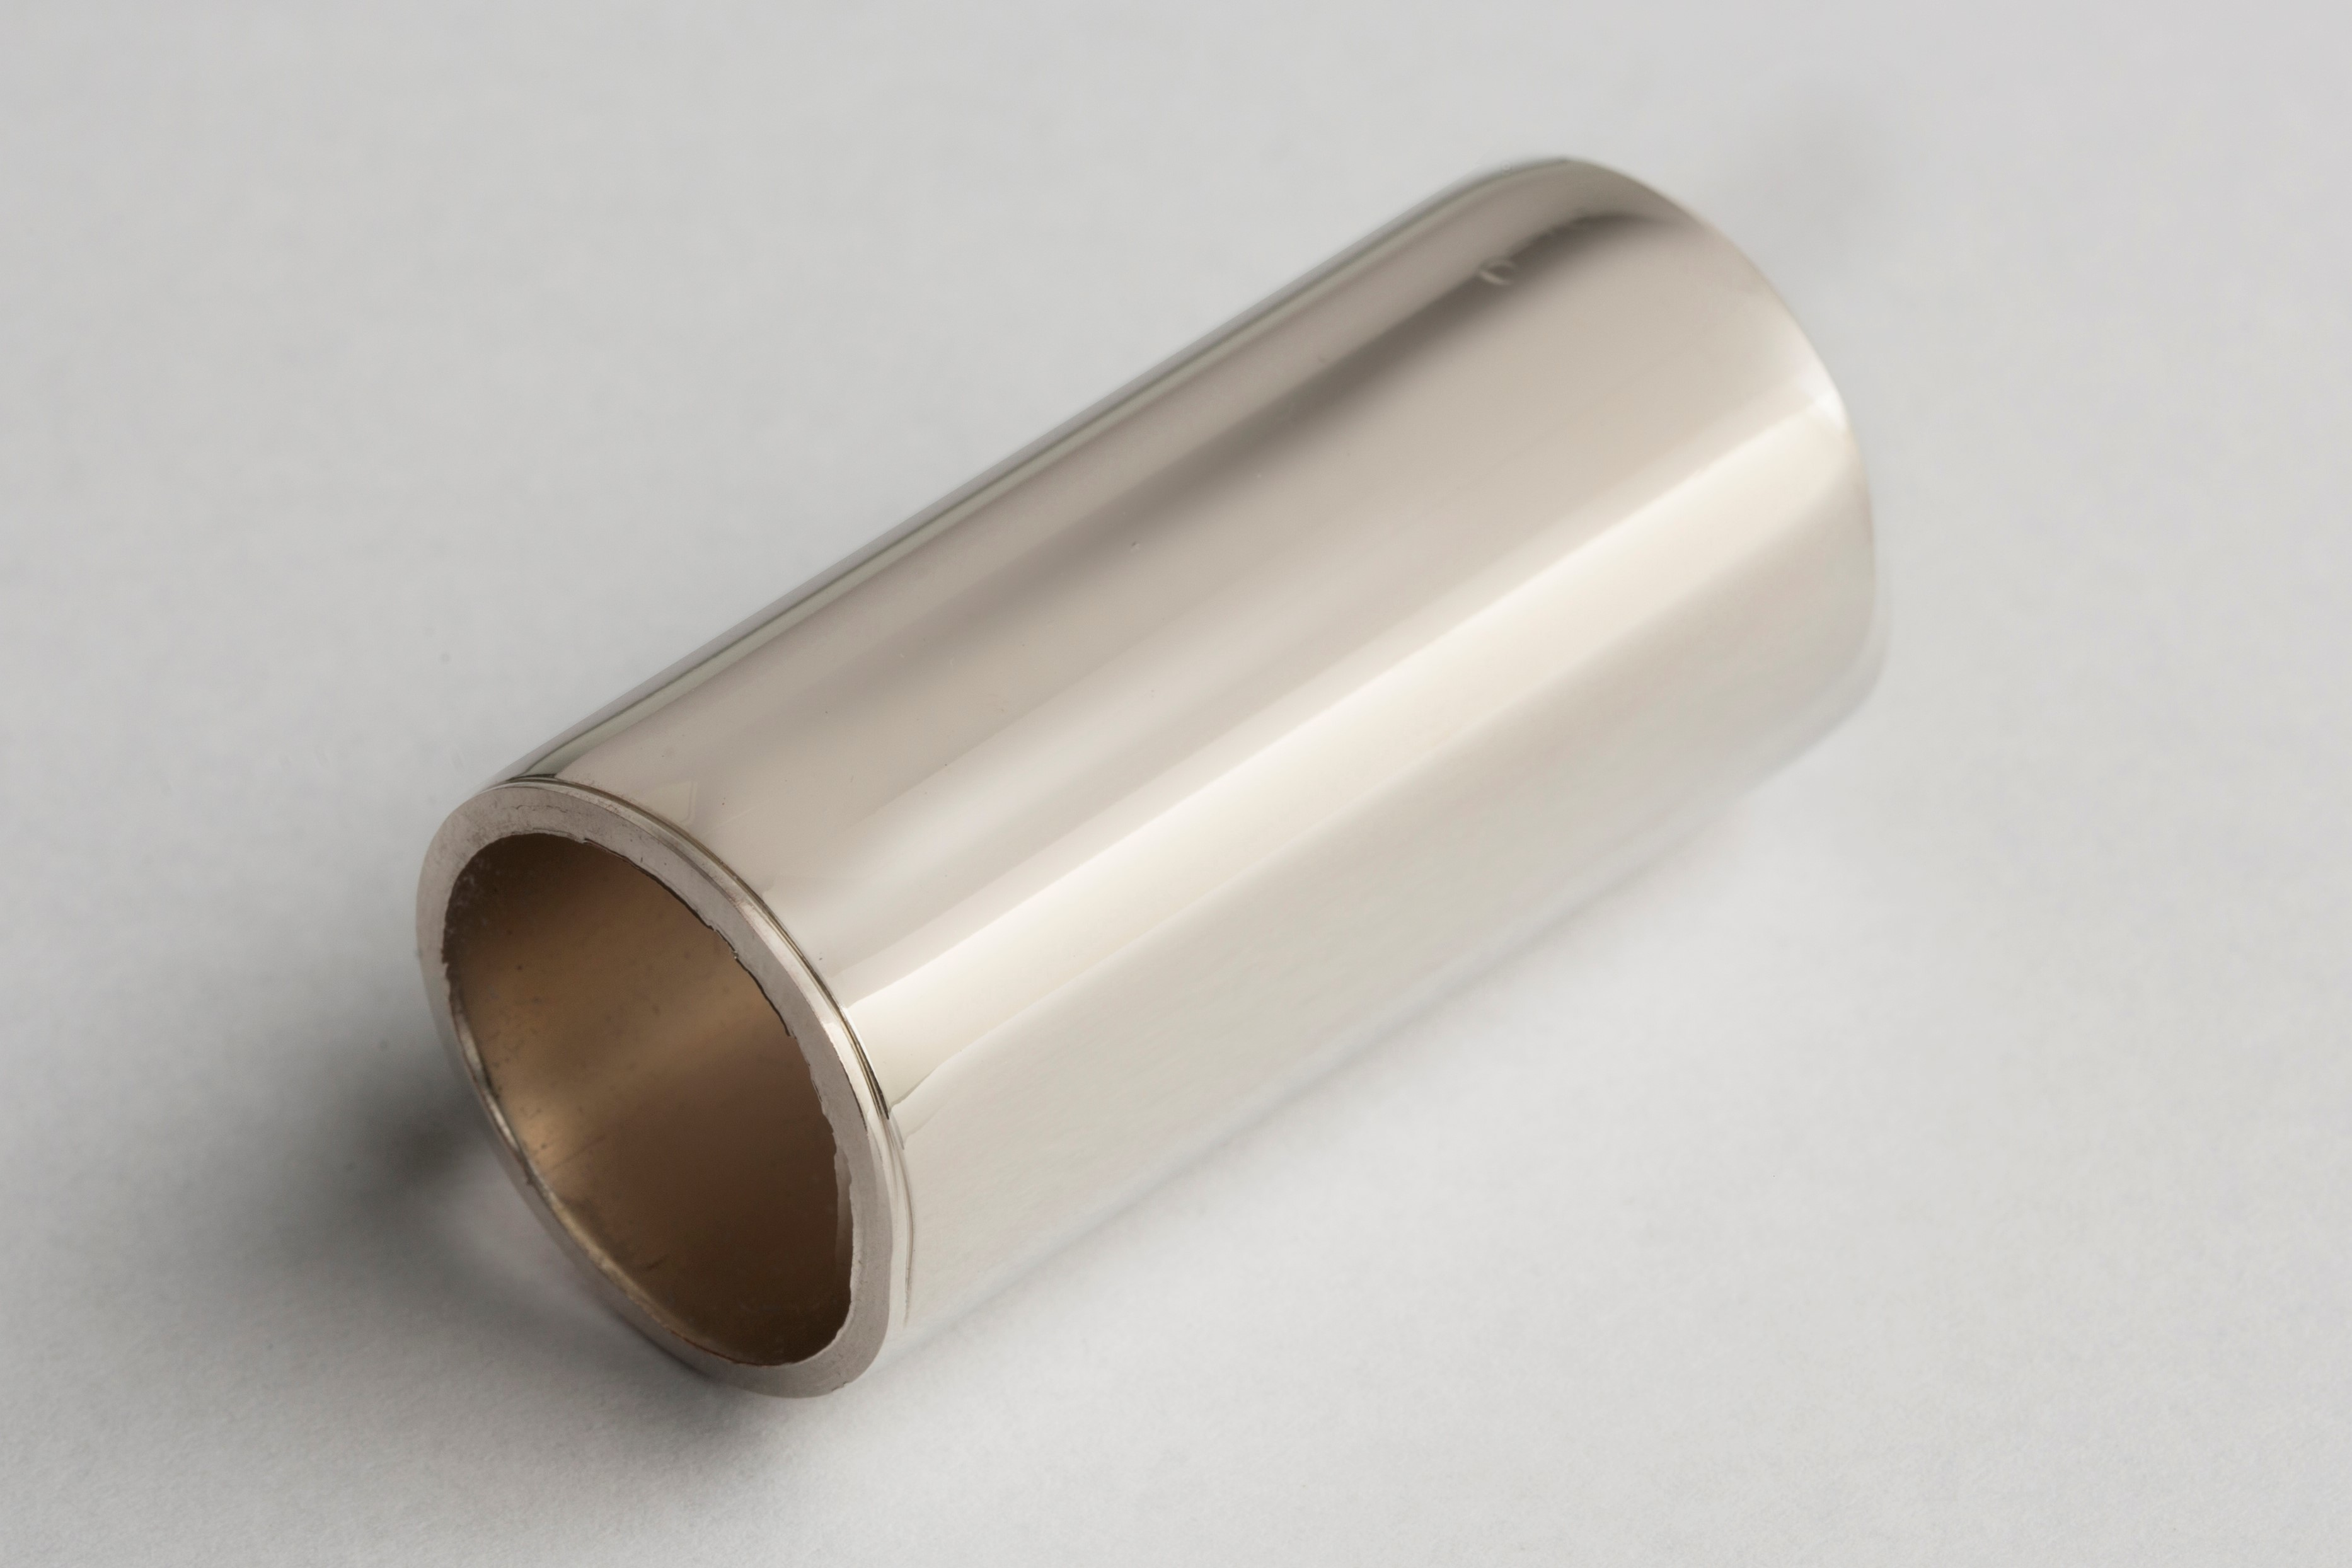 Length of metal pipe electroplated with nickel plating solution